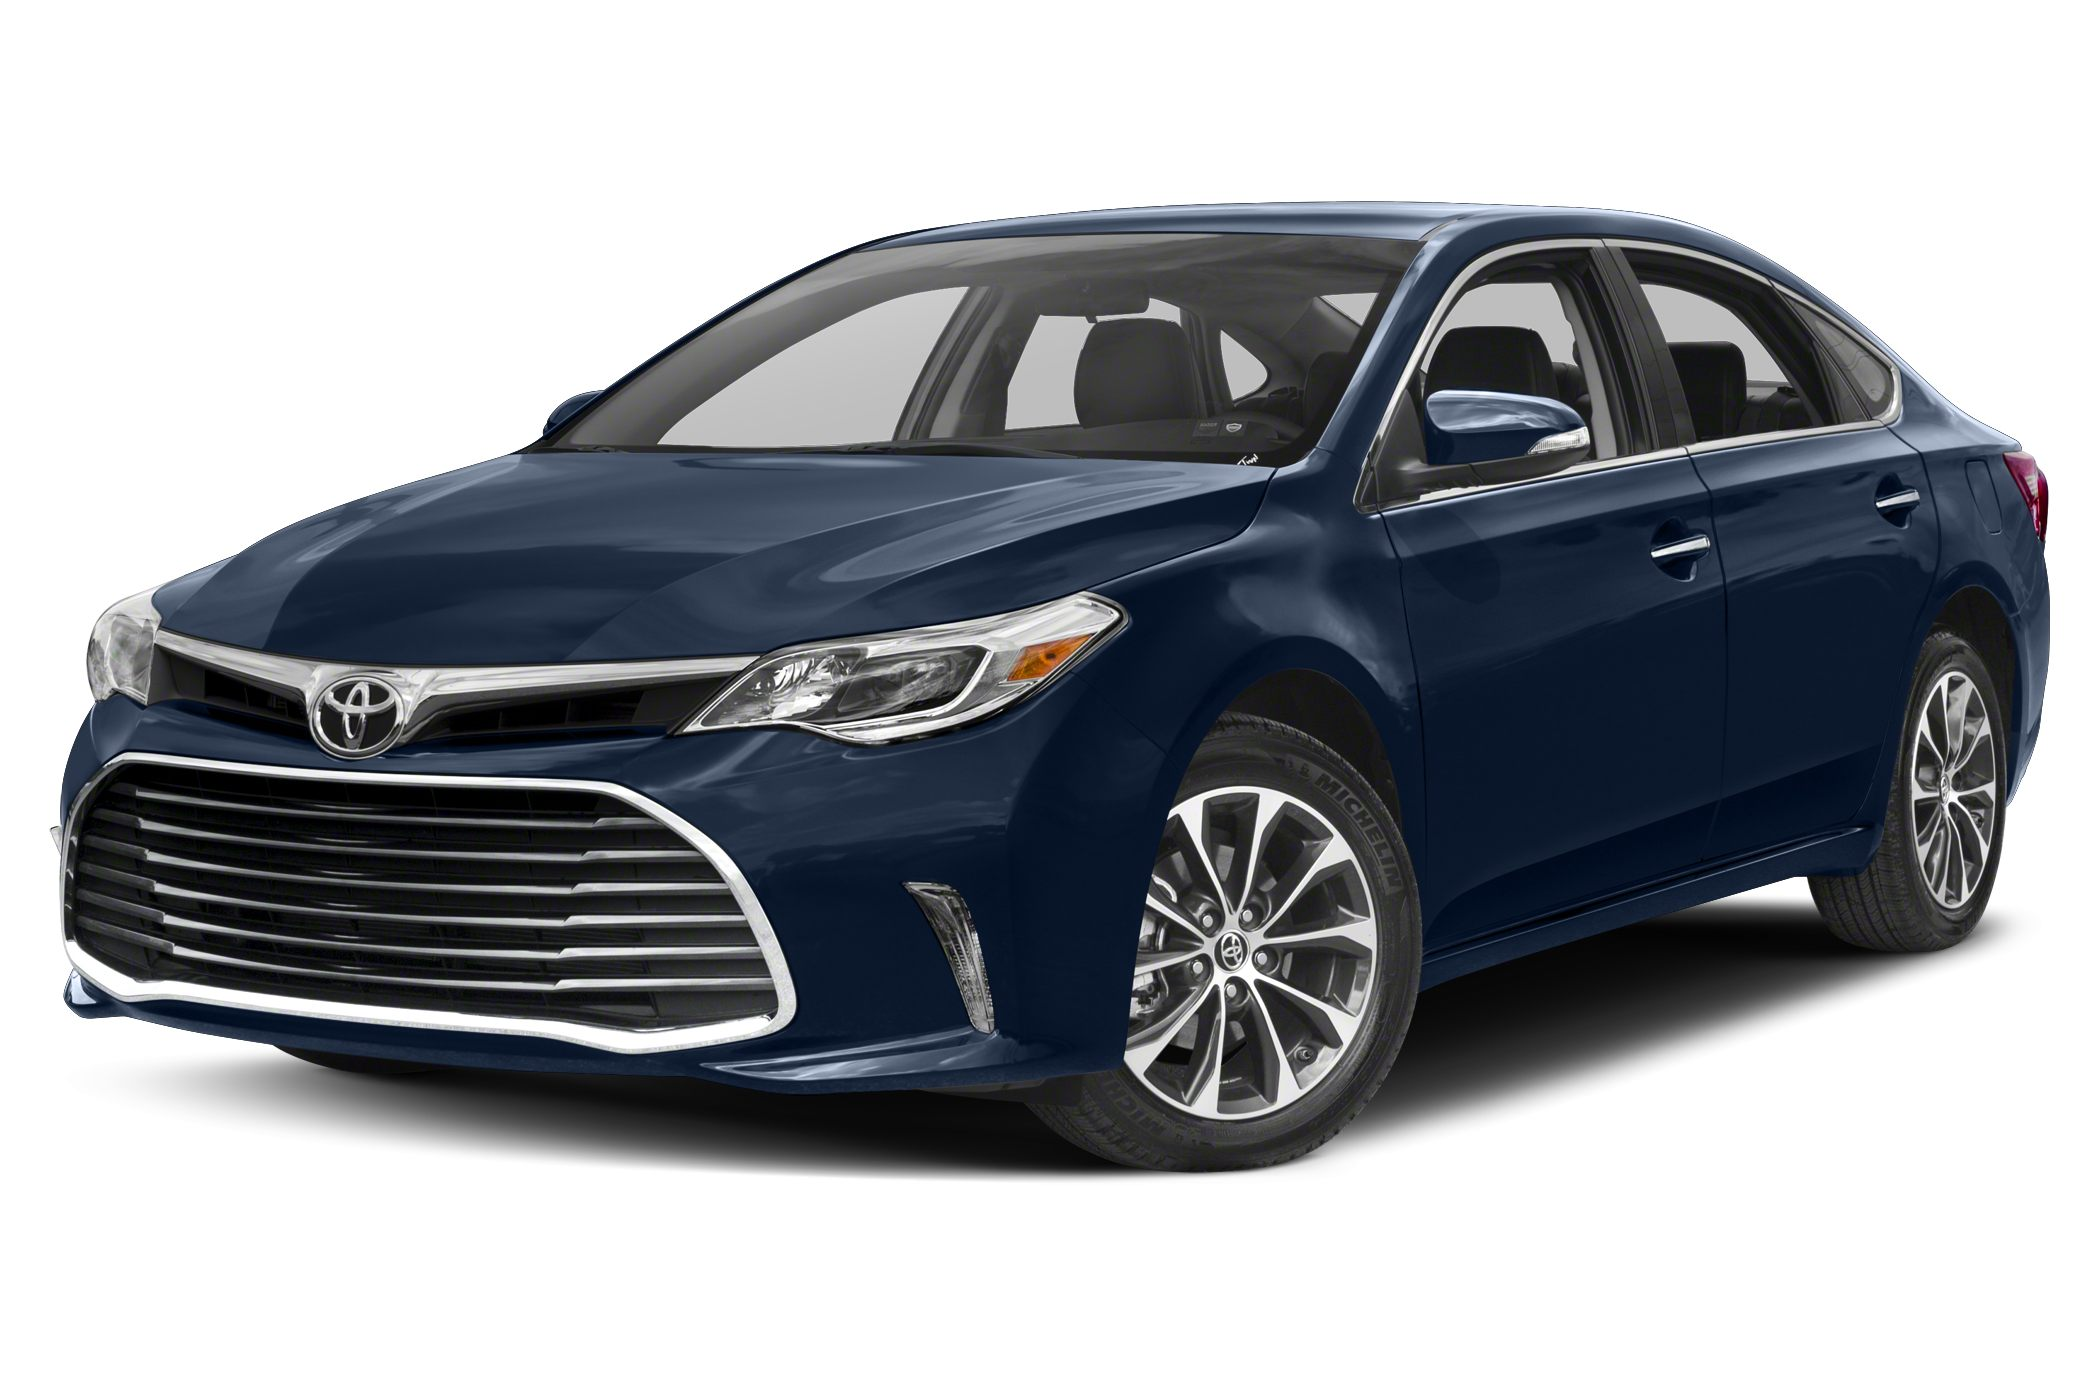 Certified Pre Owned >> Toyota Avalon Sedan Models, Price, Specs, Reviews | Cars.com